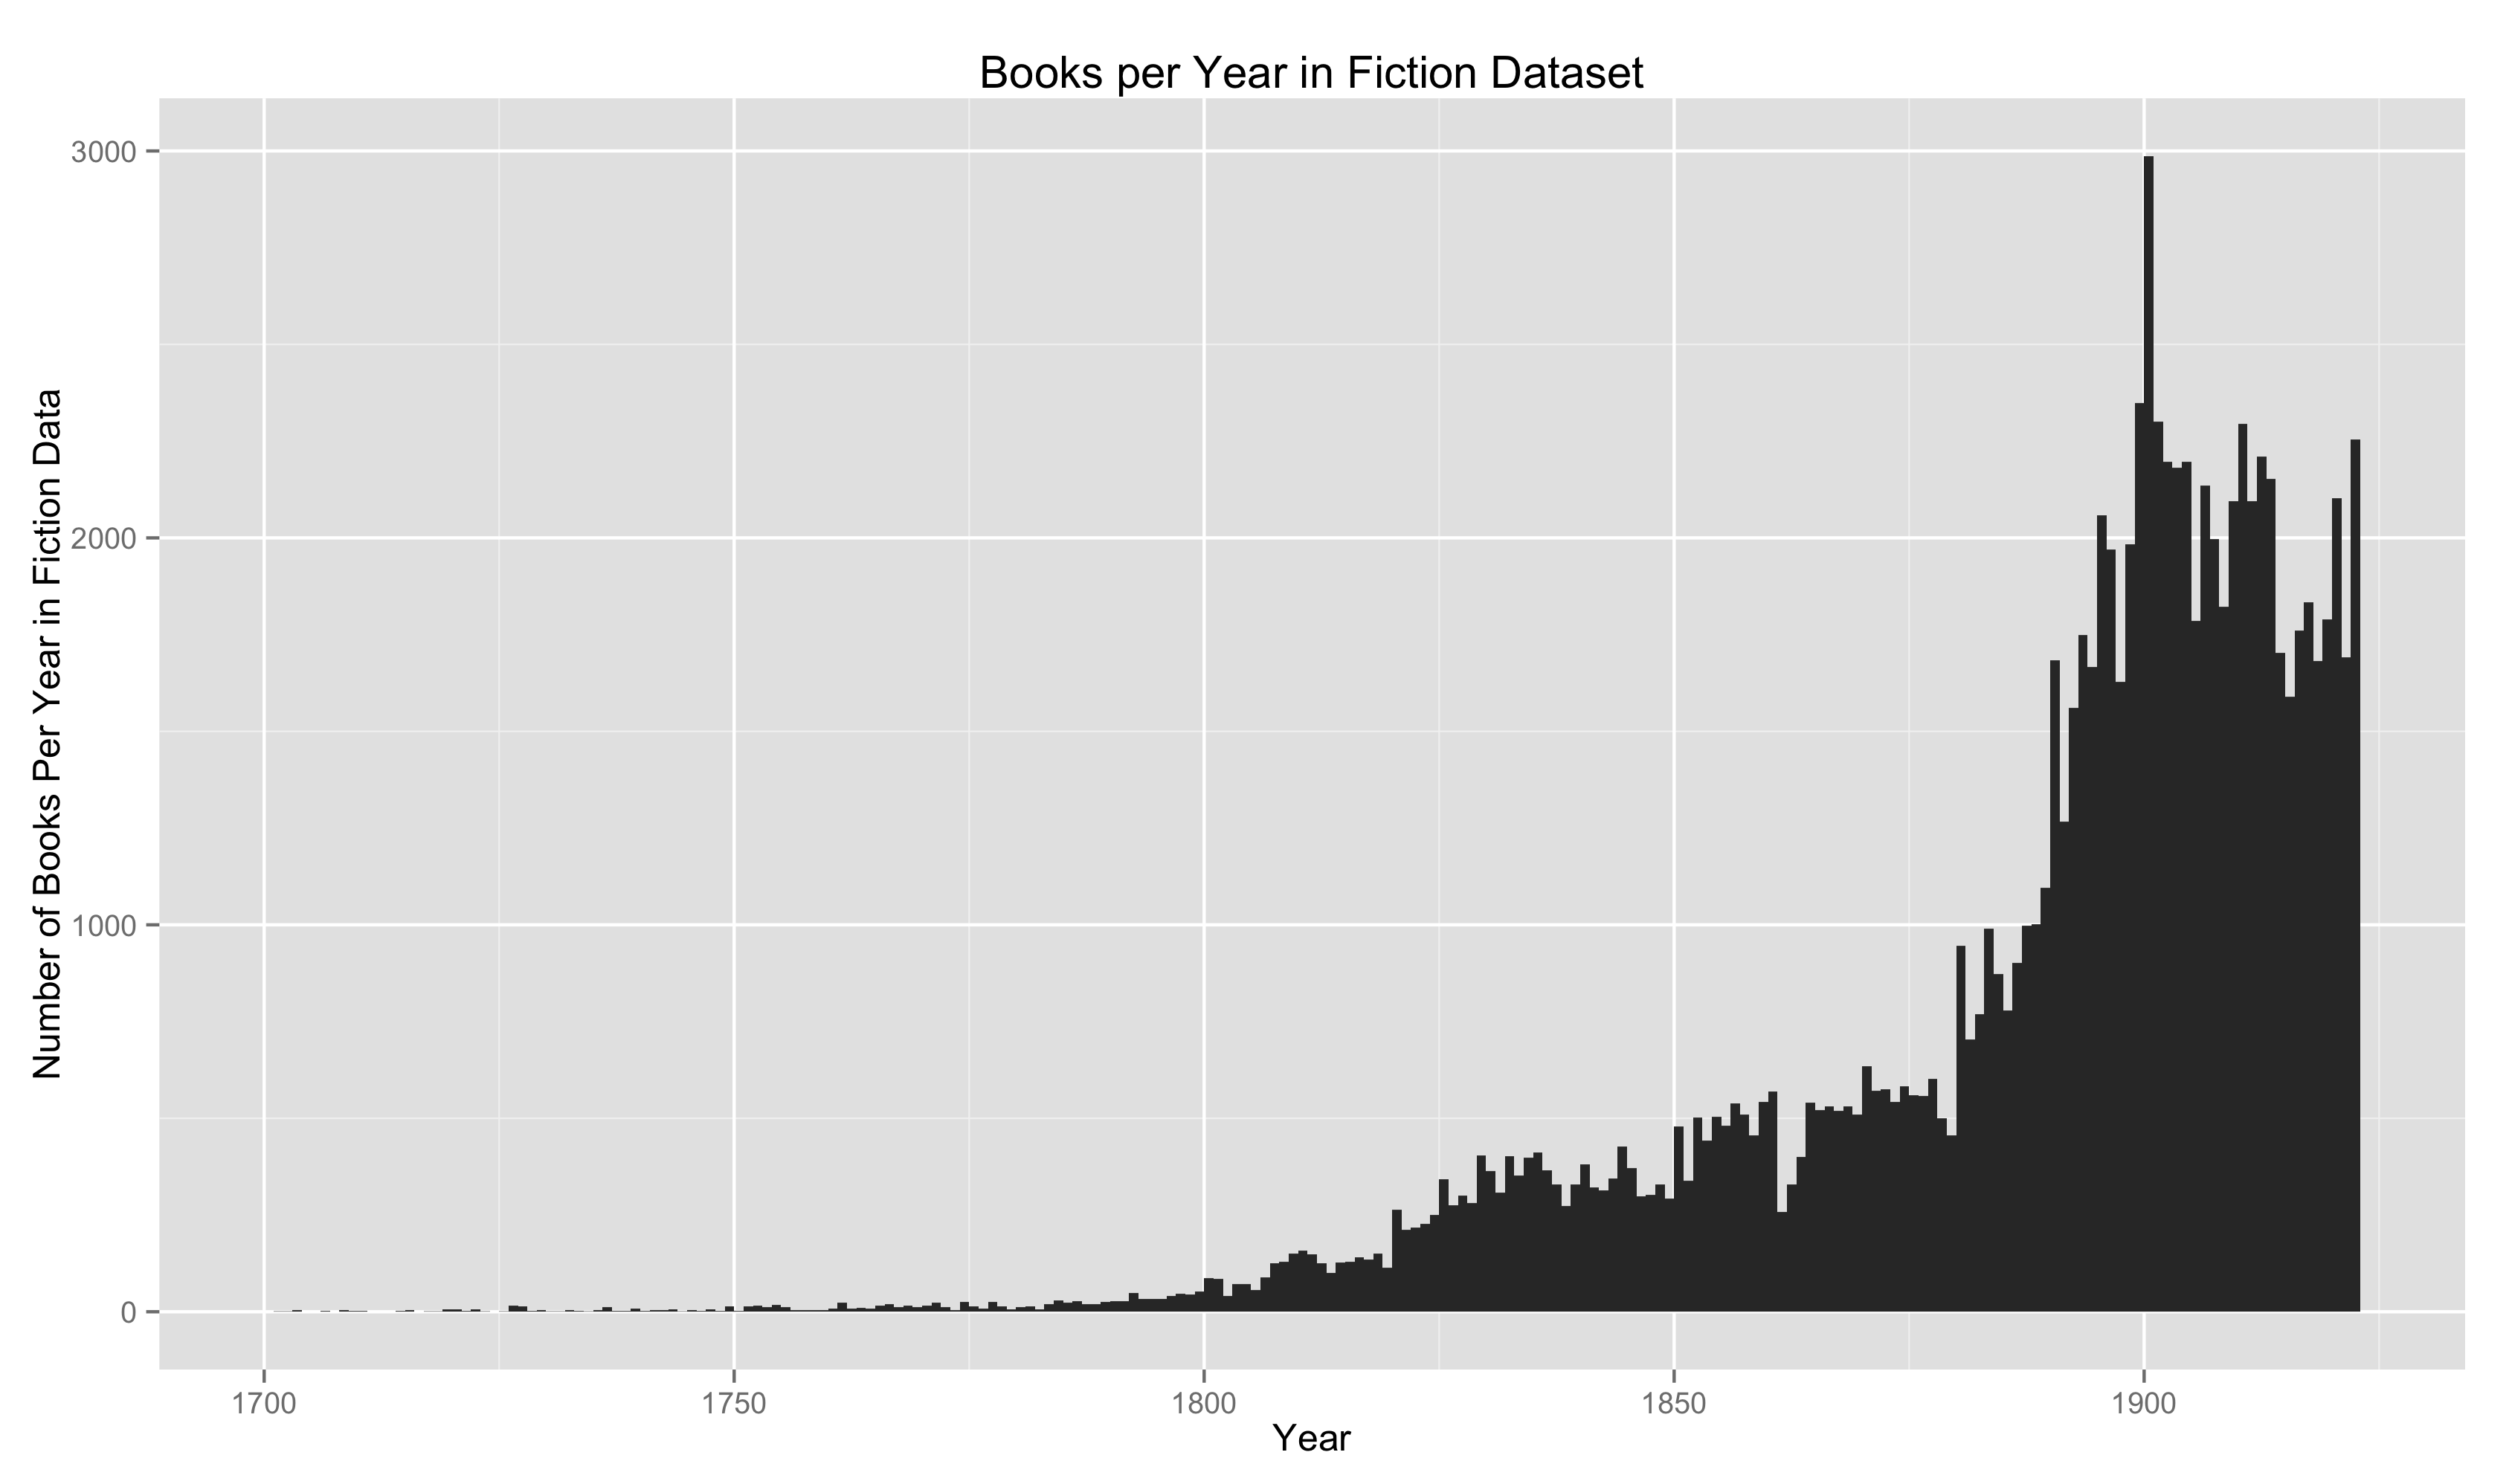 Bar Plot of Works of Fiction Per Year in HathiTrust Dataset